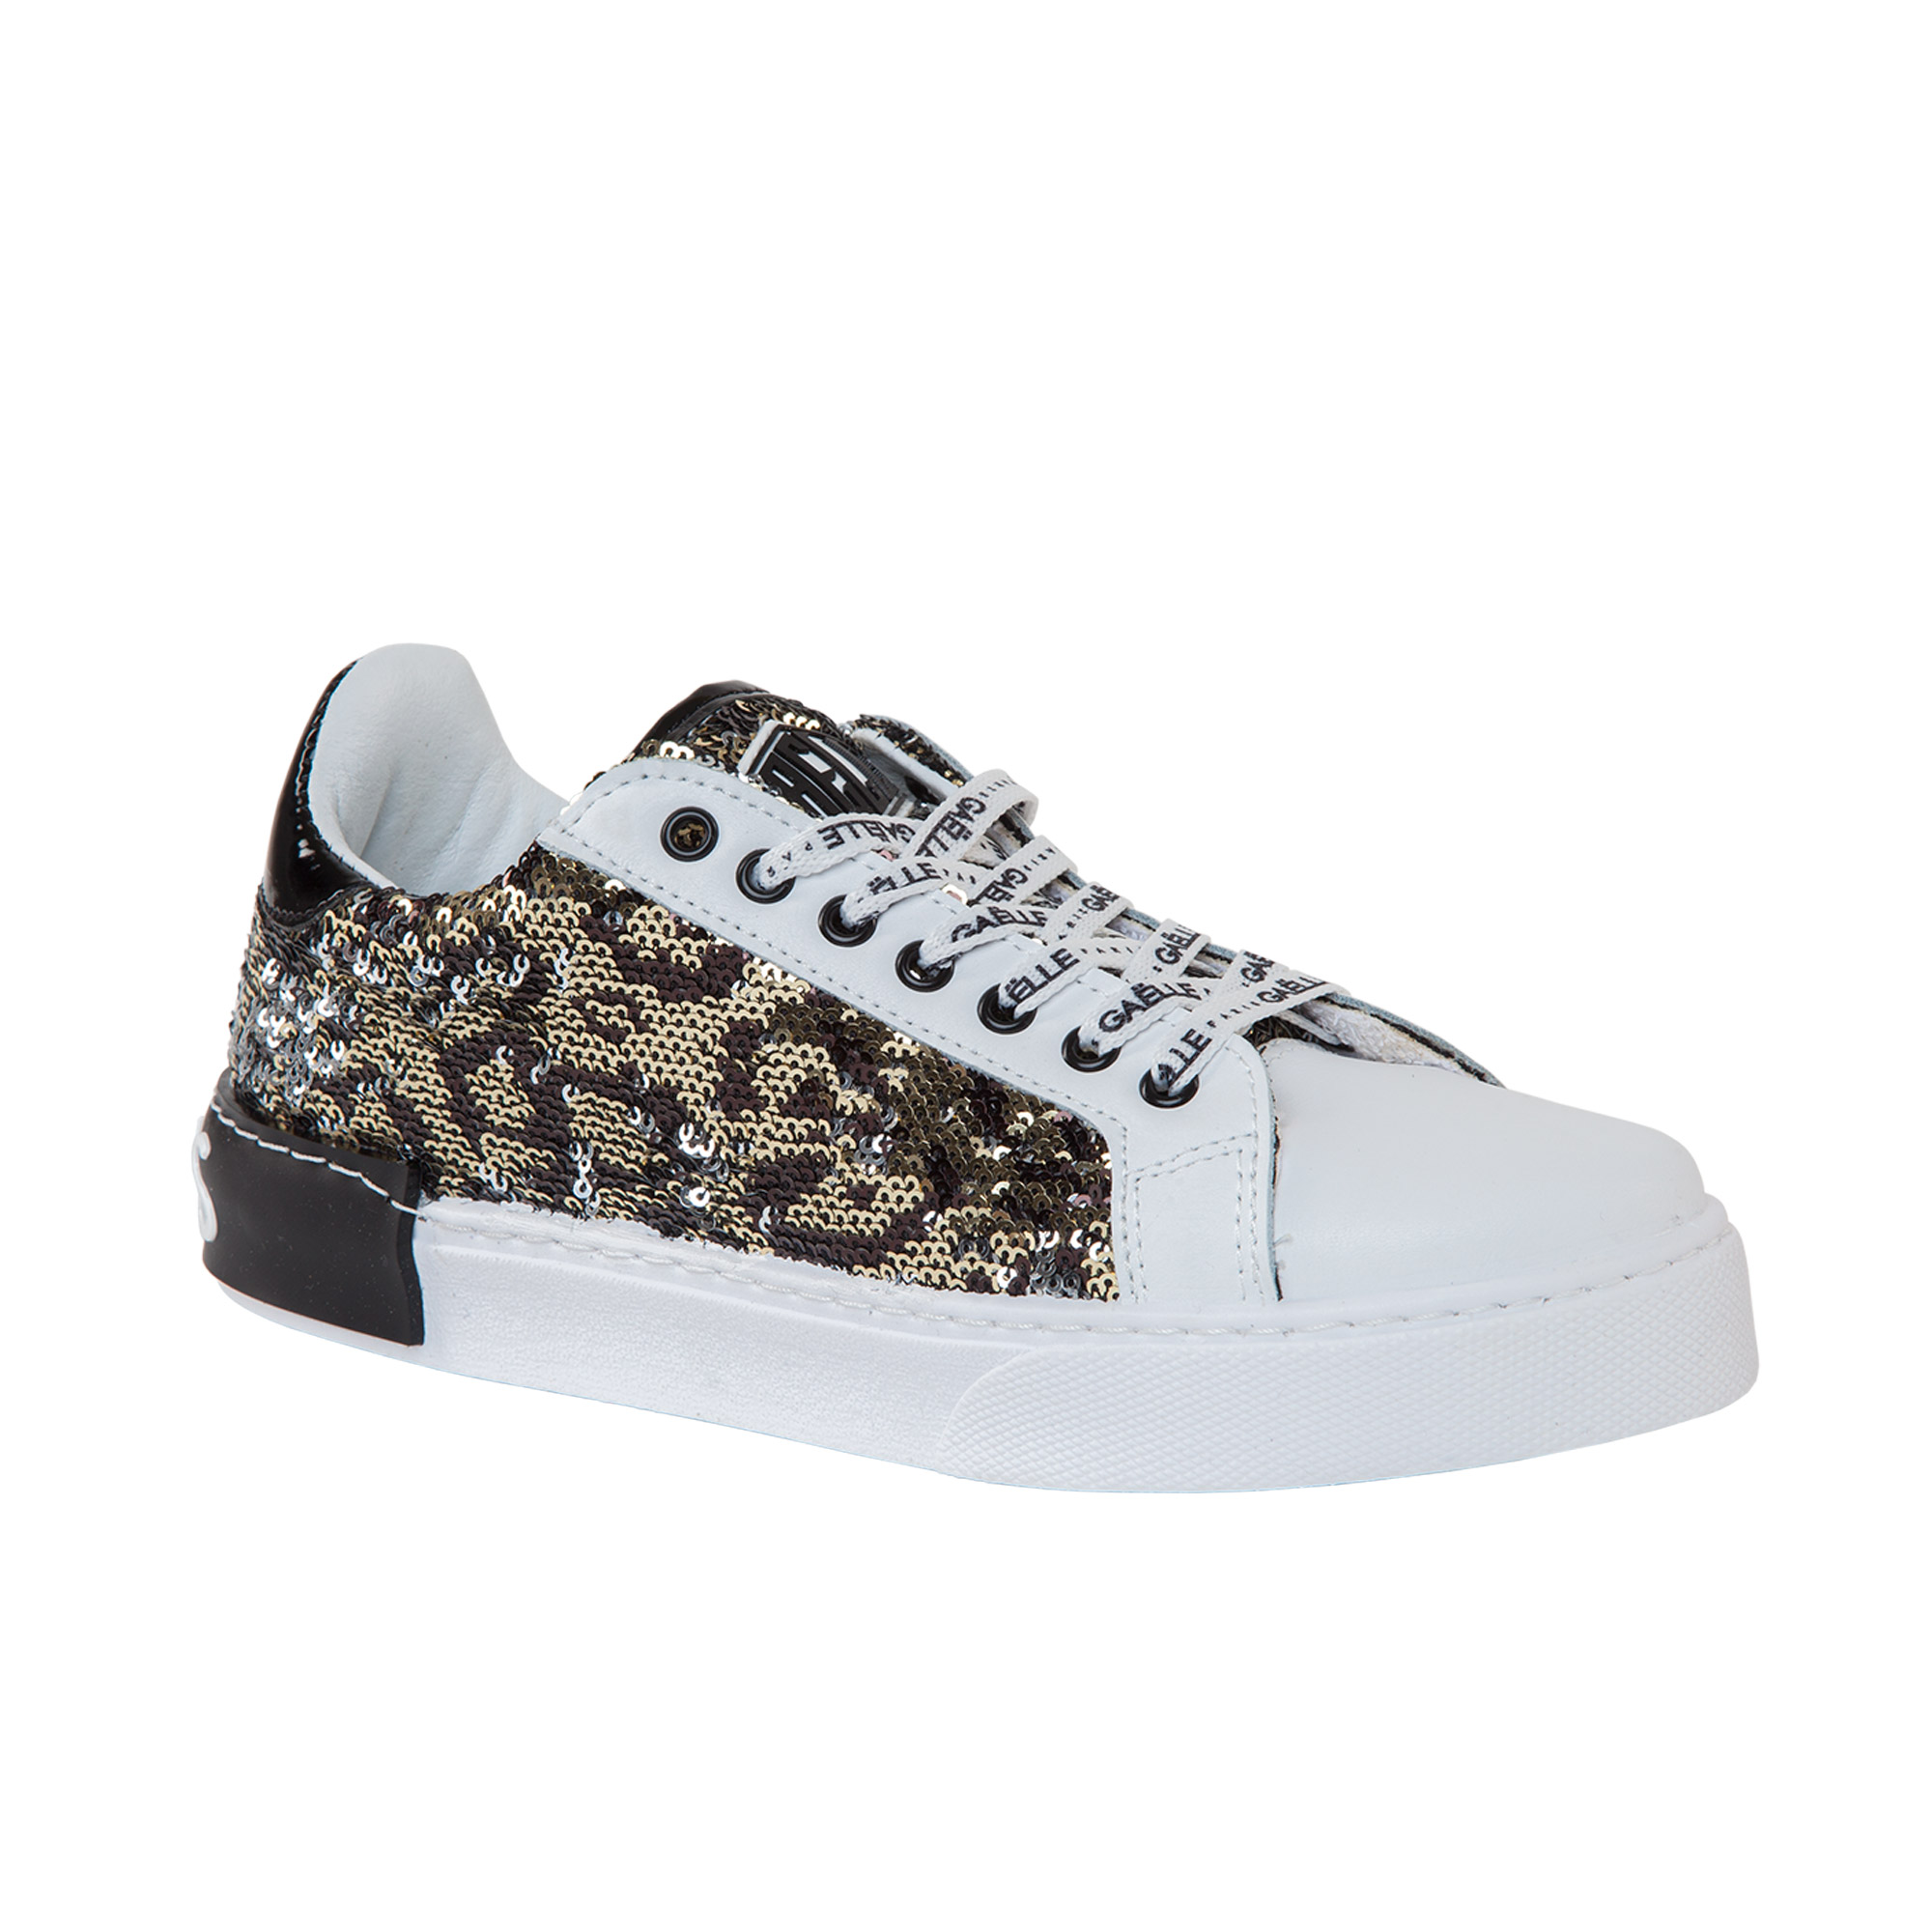 SNEAKERS - GBDA1315 - GAELLE PARIS